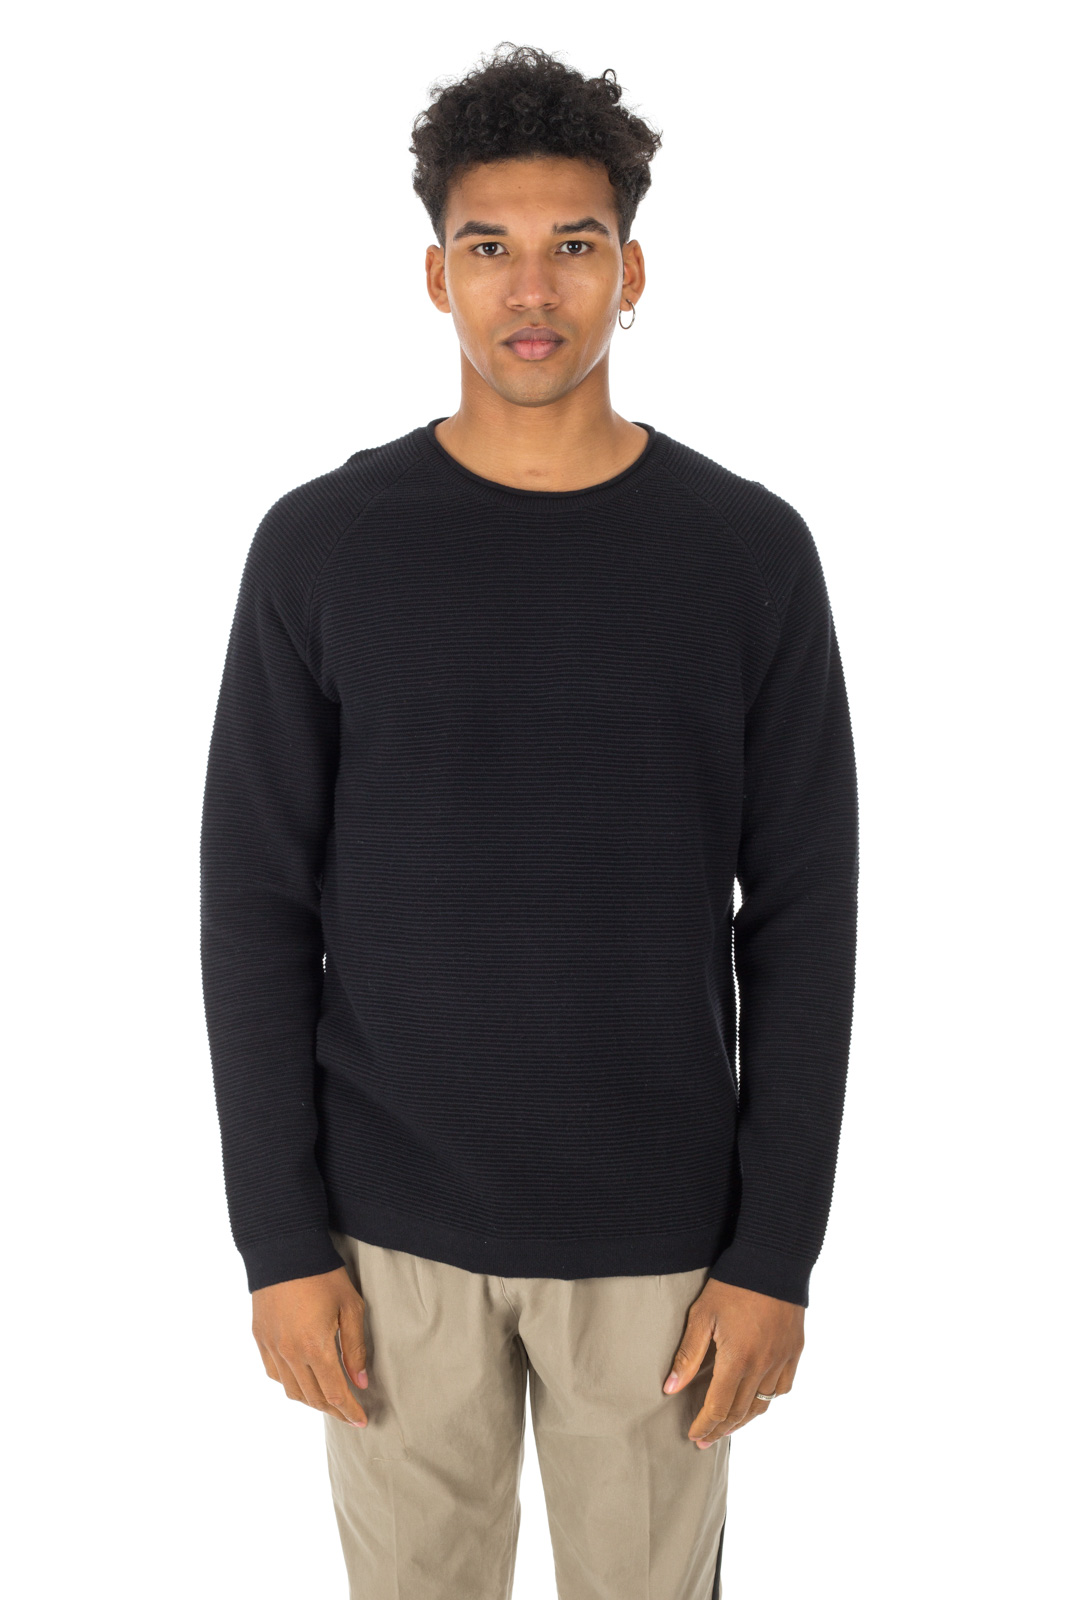 Minimum - Hanson Black Sweater